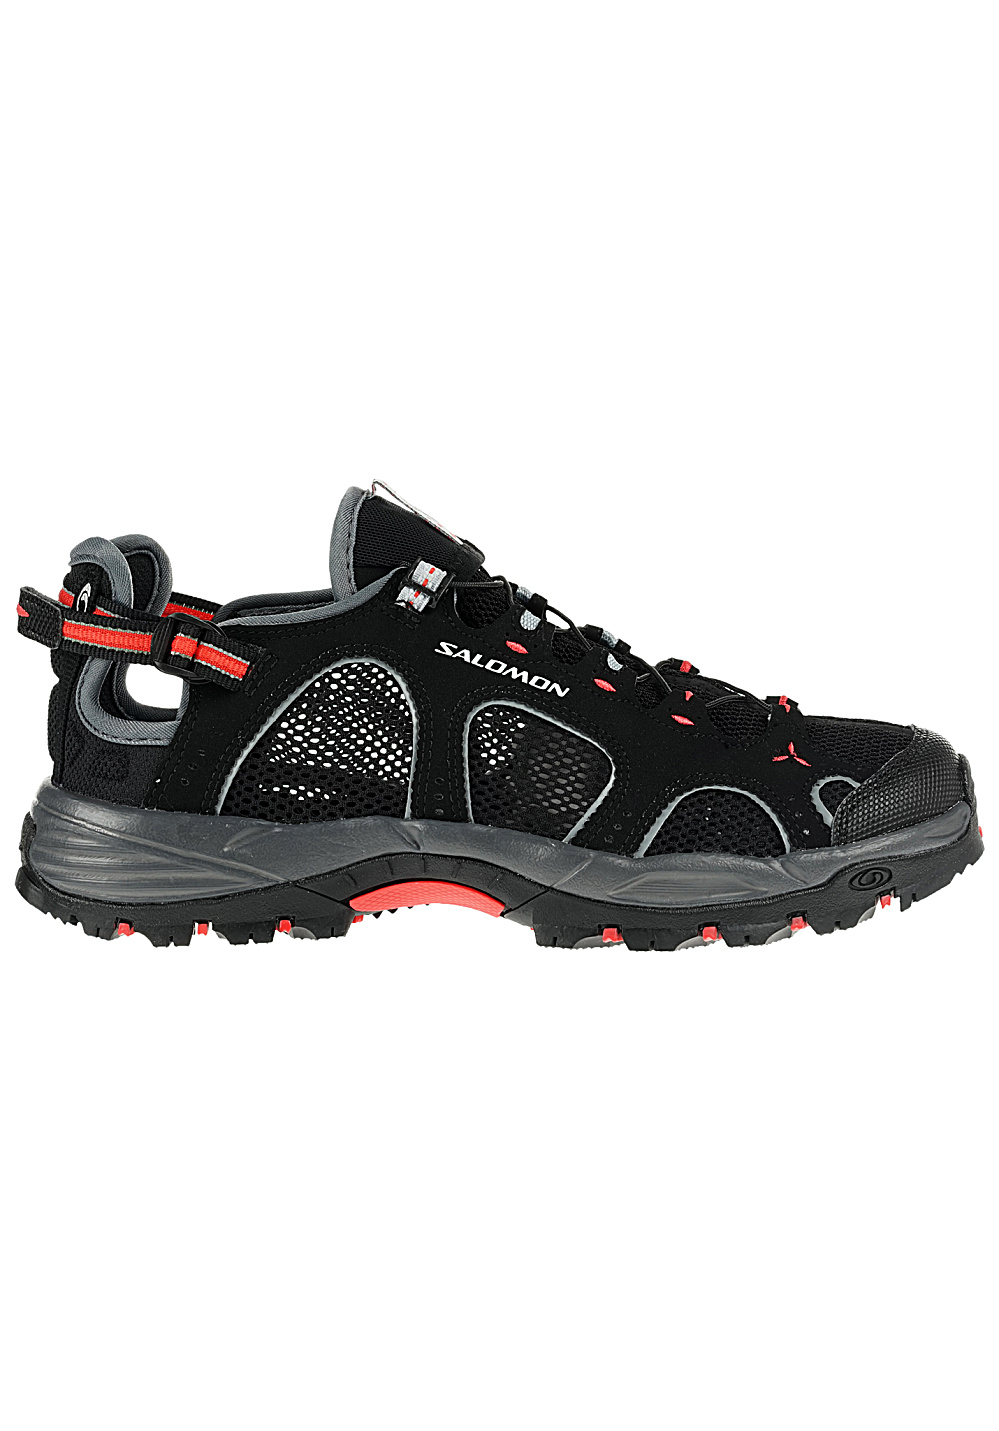 Exclusif Salomon TECHAMPHIBIAN 3 Chaussures de marche